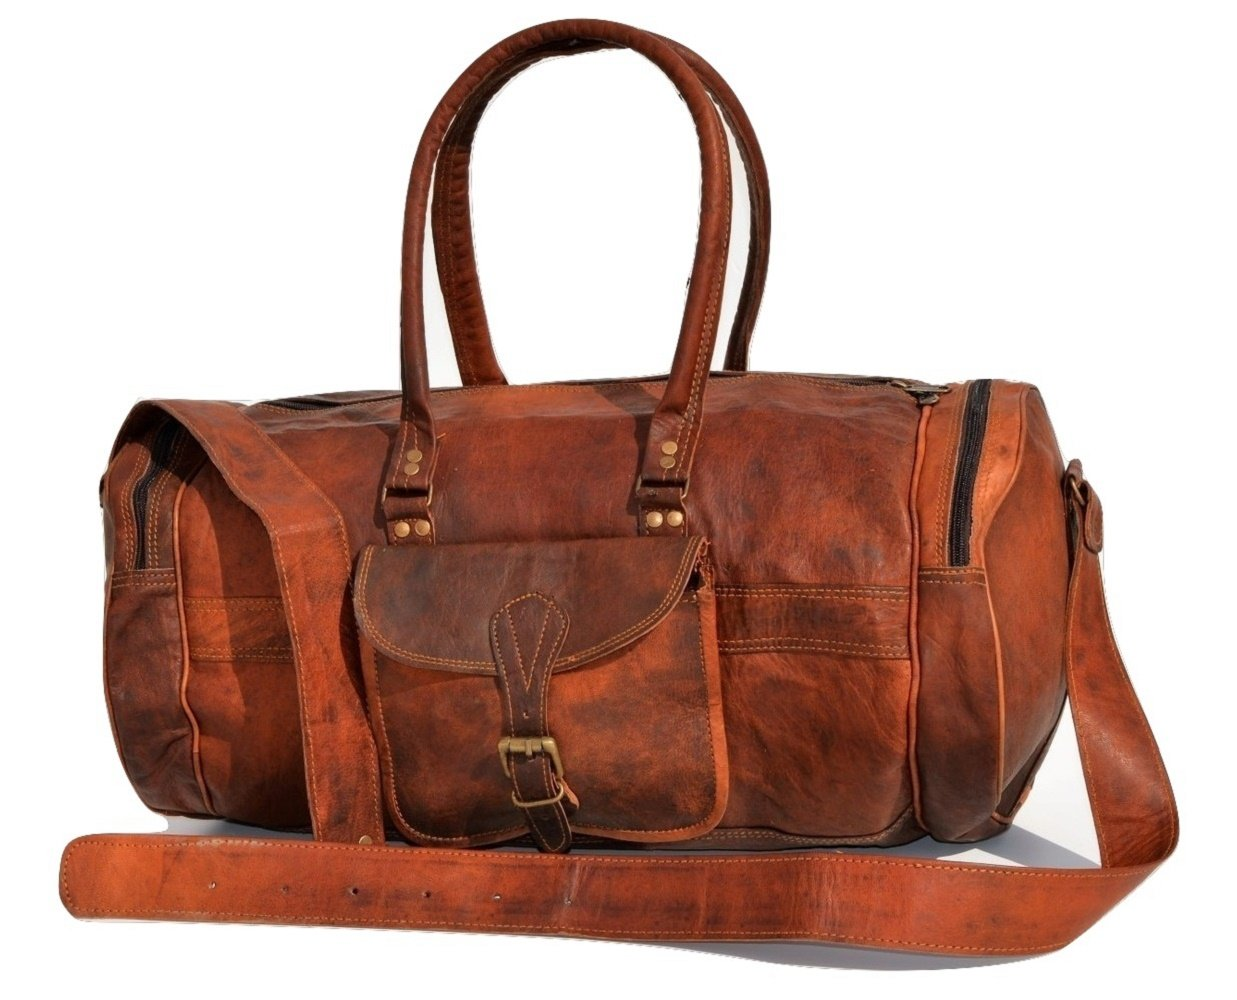 Urban Dezire Leather Duffel for Men and Women Overnight Weekend Diaper Travel Bags